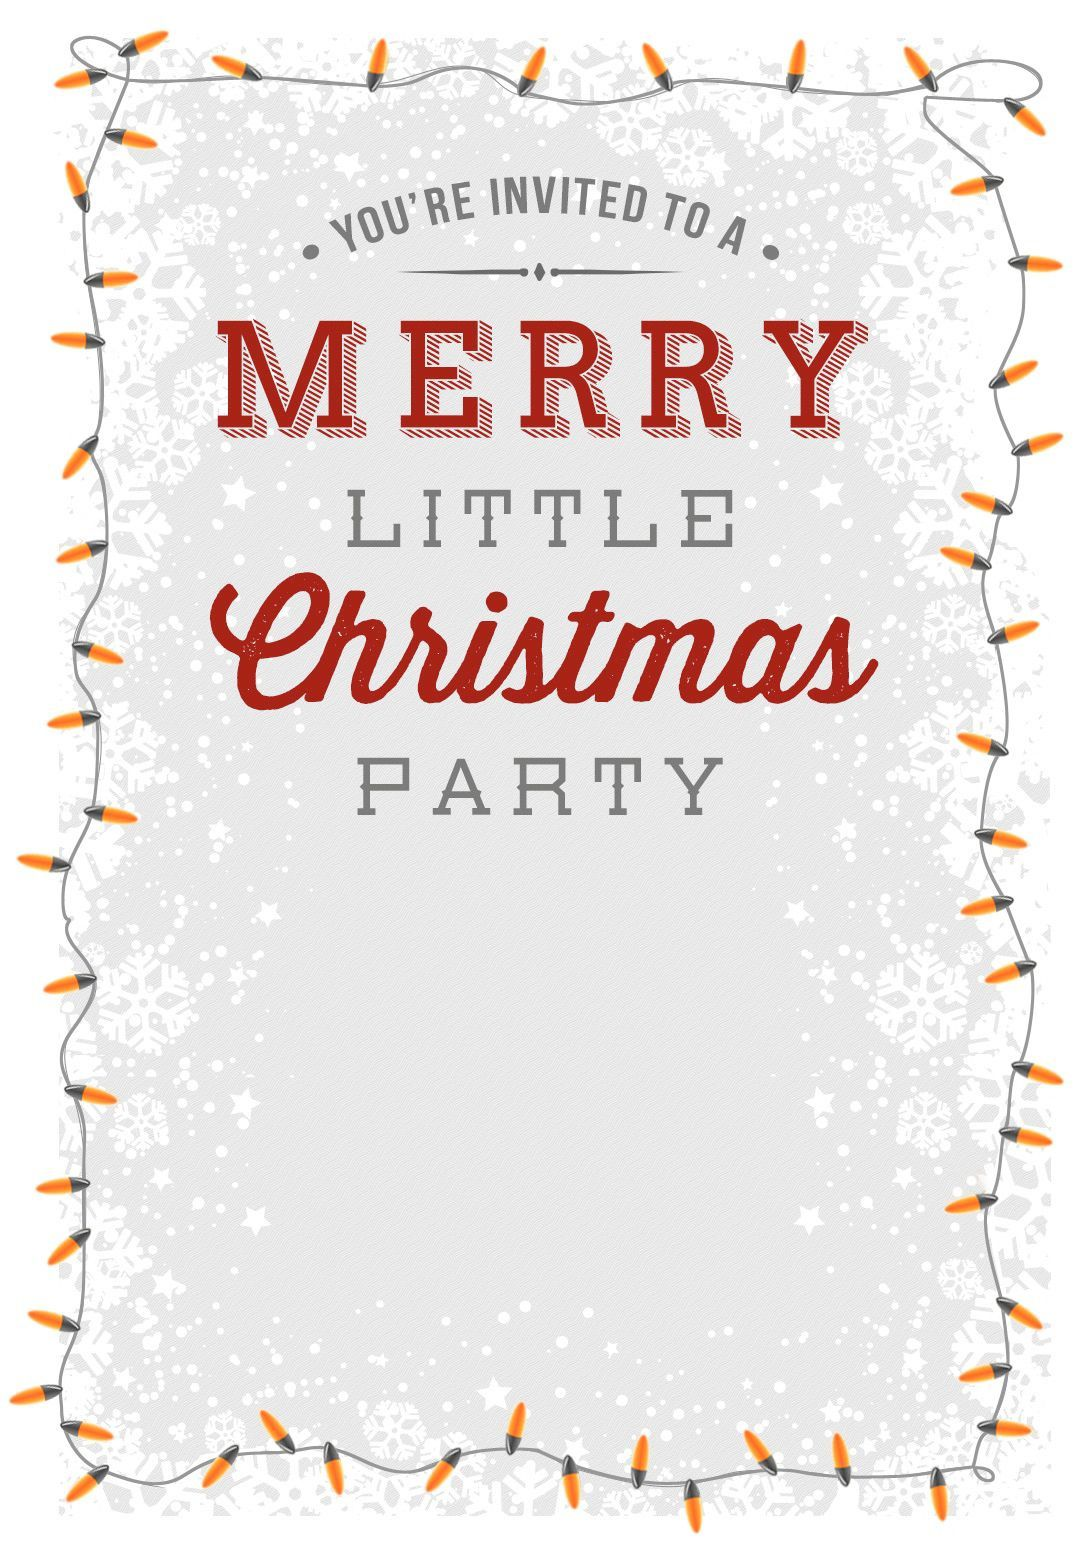 006 Awful Christma Party Invite Template Free Download Photo  Funny Invitation HolidayFull